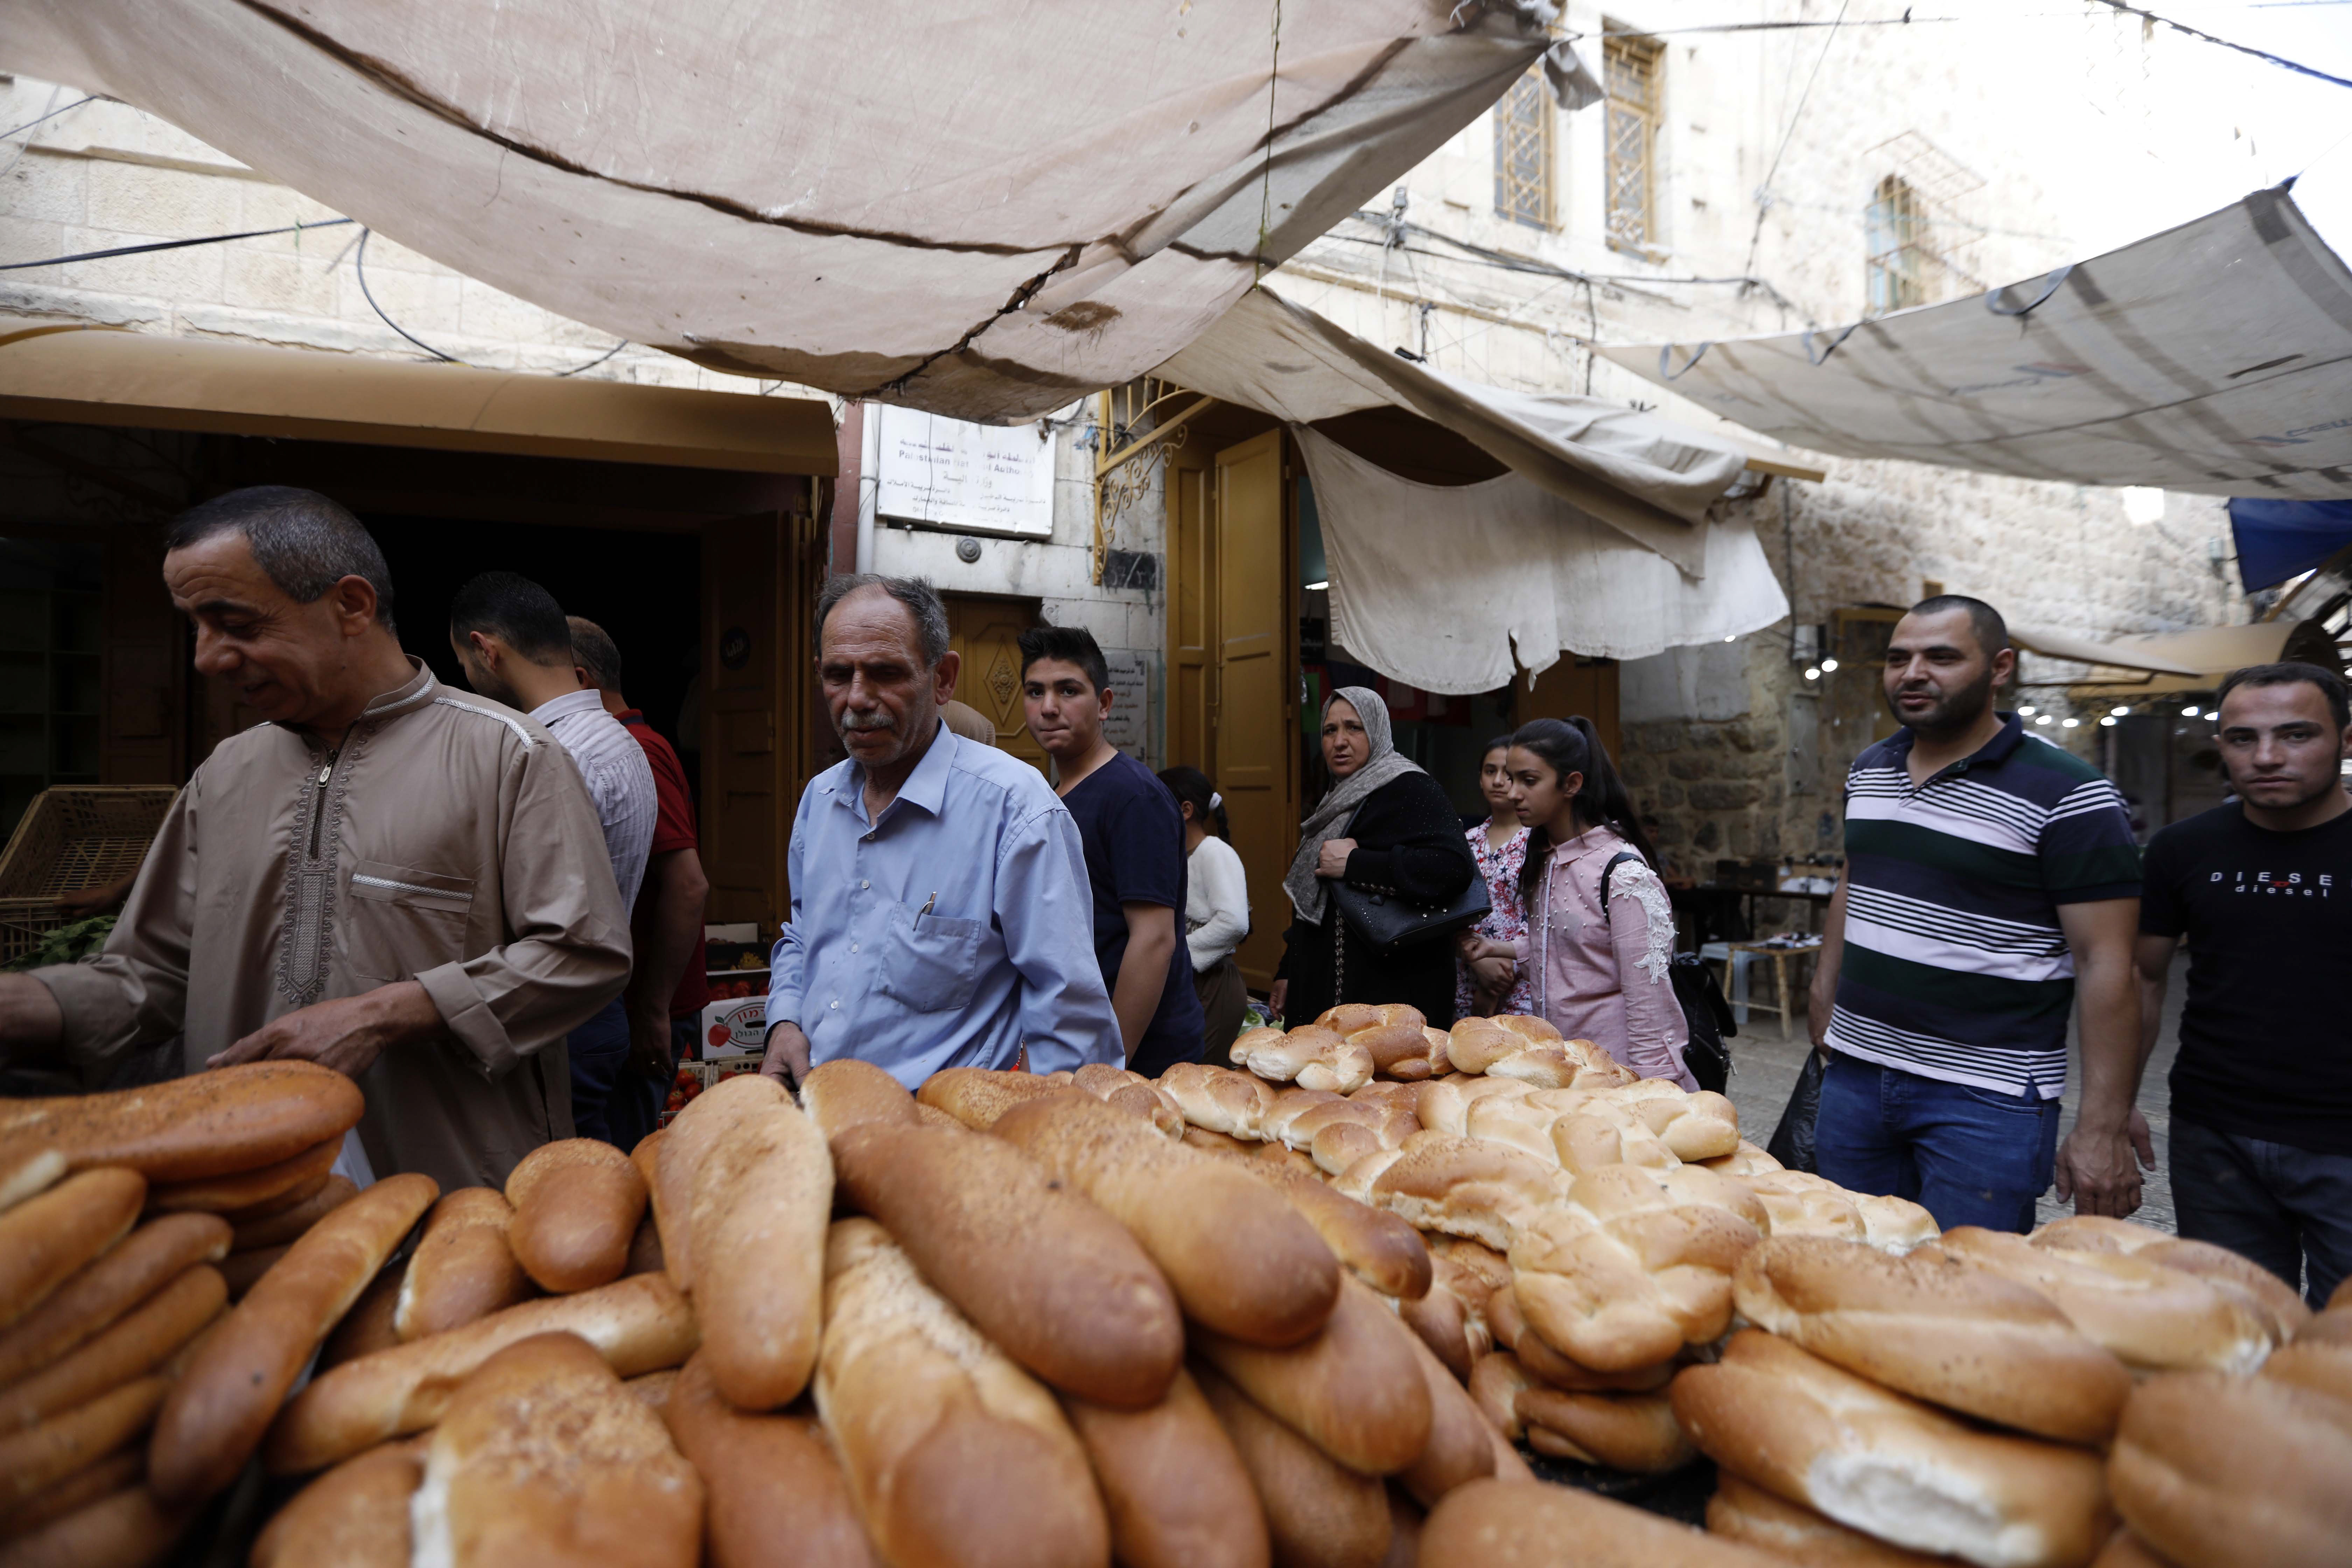 Stall selling bread at a market in the West Bank city of Hebron (22 May 2019)